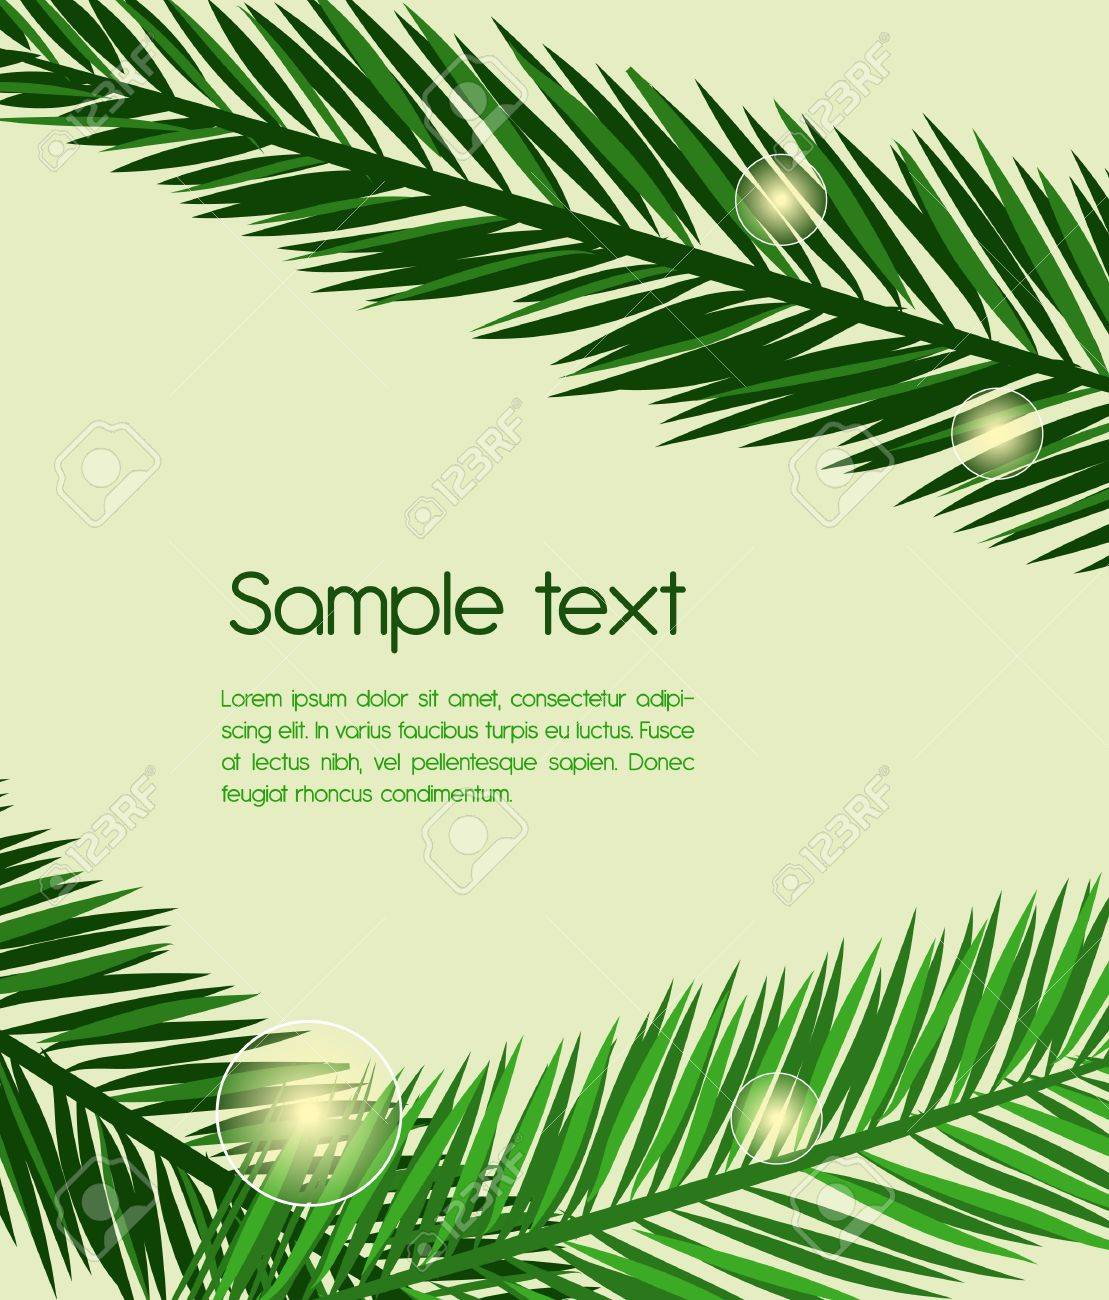 Abstract background with green leafs Stock Vector - 9393848